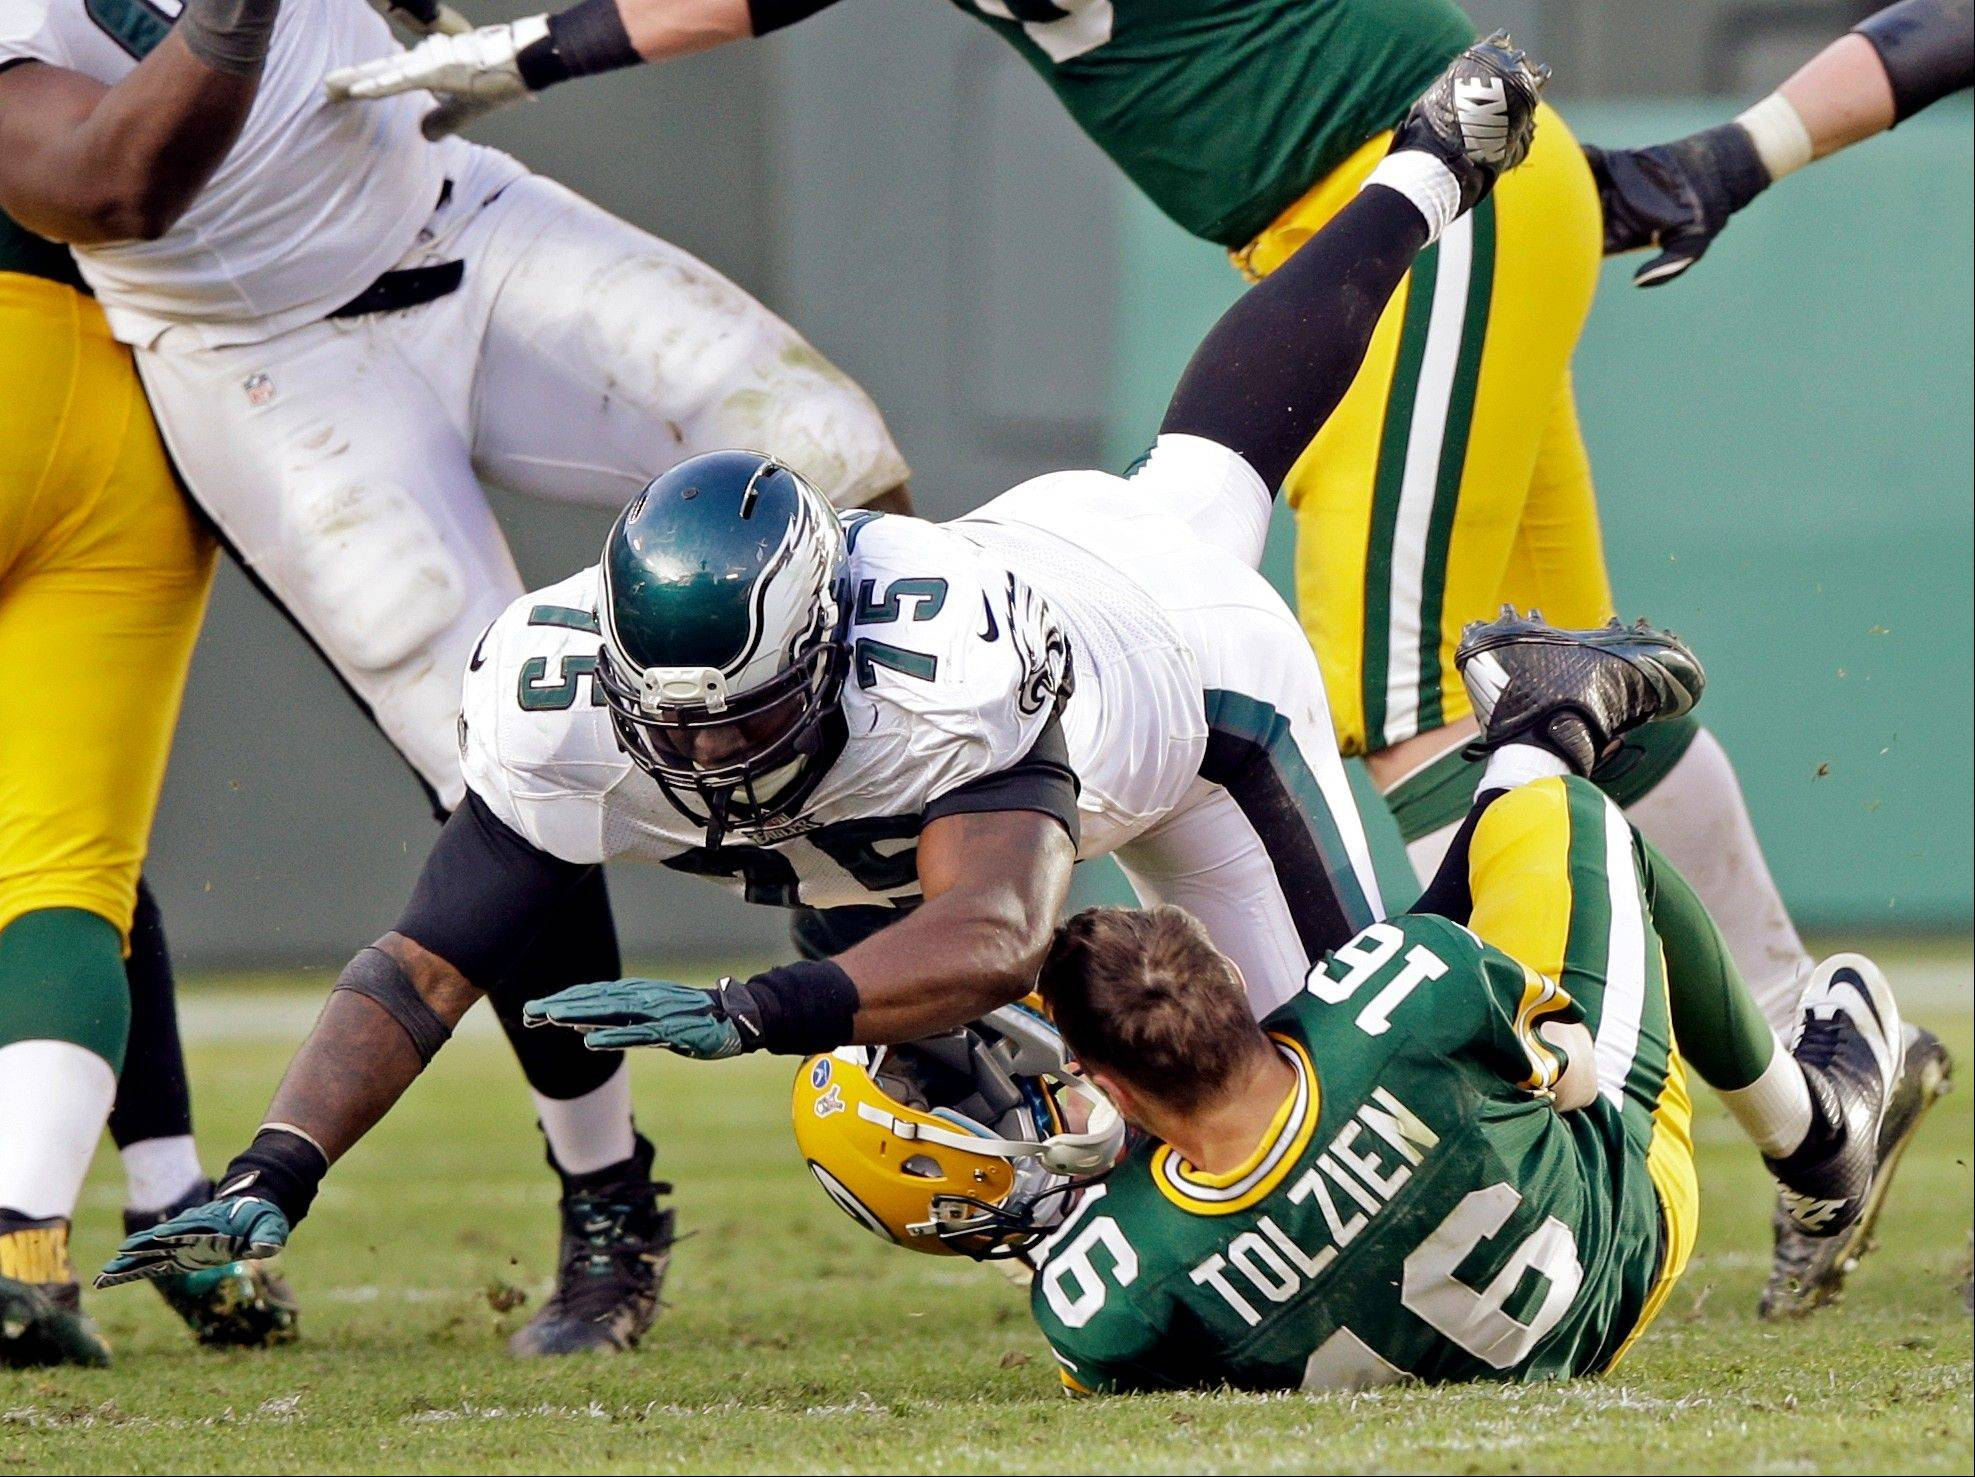 Green Bay Packers quarterback Scott Tolzien loses his helmet as he is sacked by Philadelphia Eagles' Vinny Curry during the second half of an NFL football game Sunday, Nov. 10, 2013, in Green Bay, Wis.